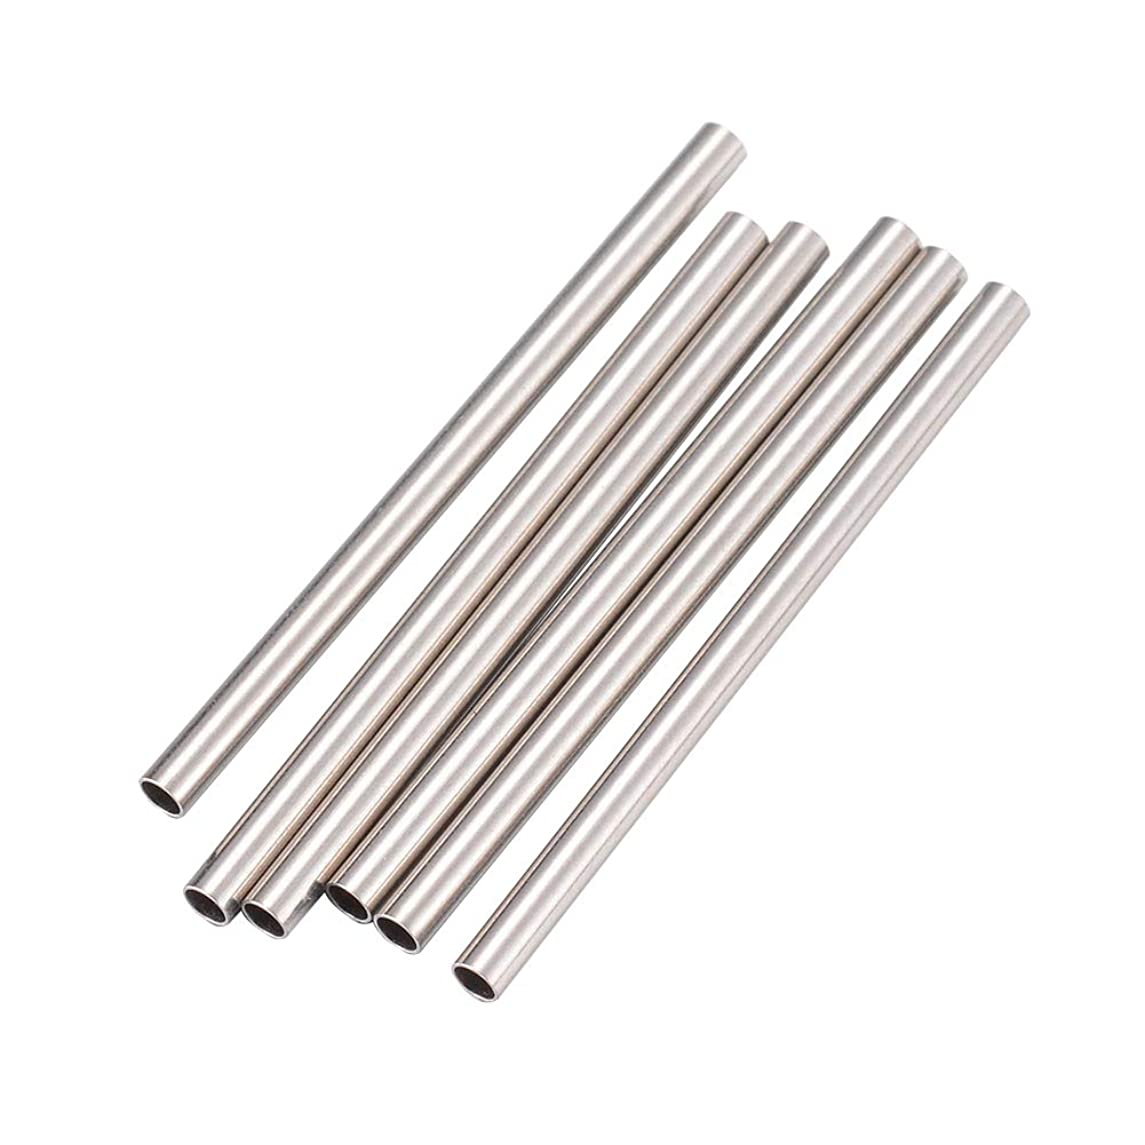 PH PandaHall 500pcs 1mm Long Tube Beads Stainless Steel Straight Spacer Beads Smooth Tube Loose Beads Connector for Jewelry Crafts Making Findings 25x1.5mm